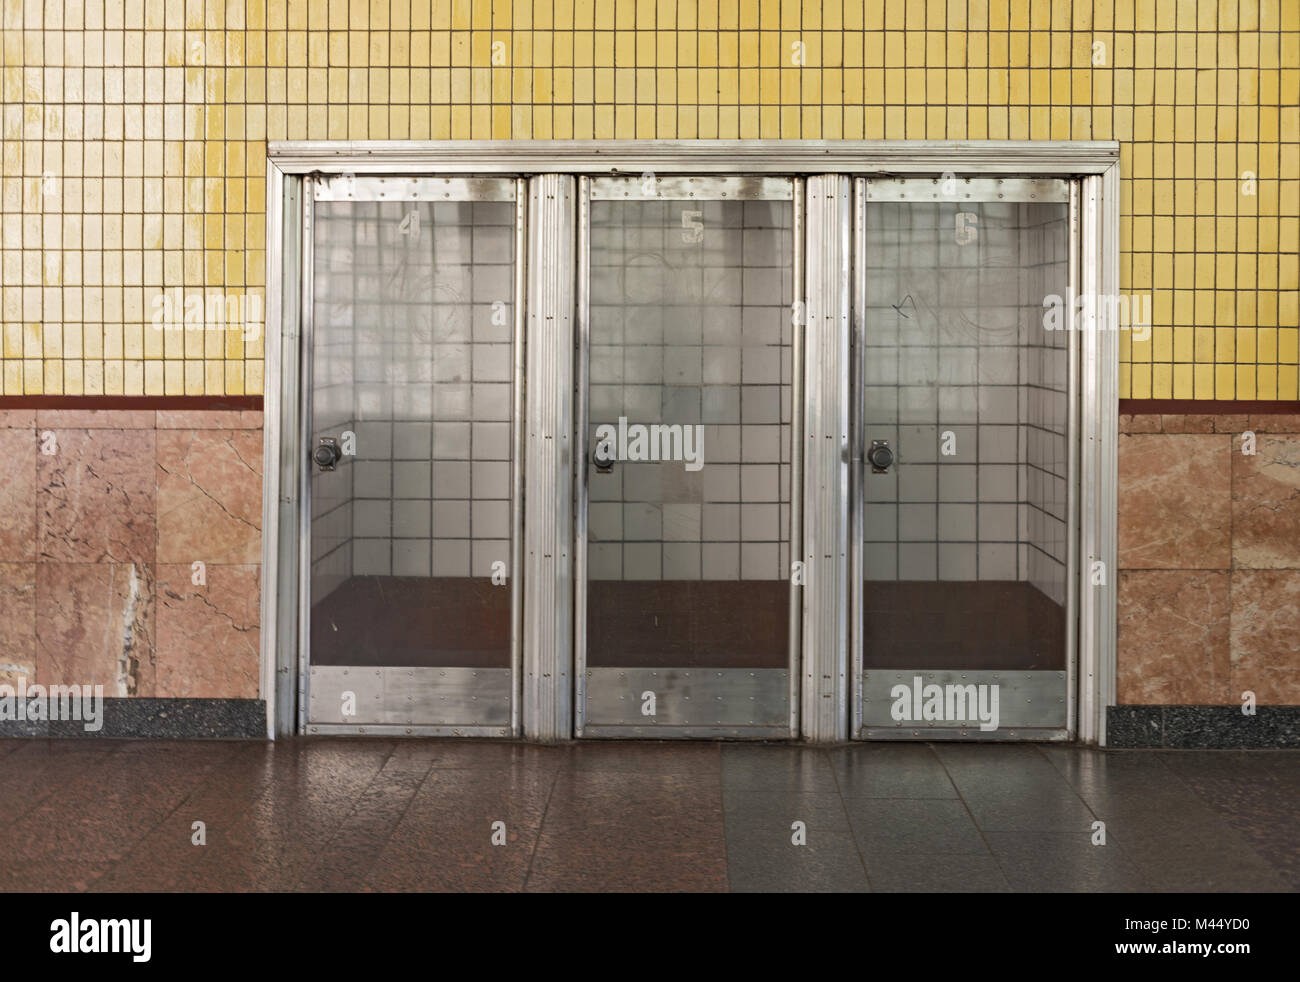 three doors in subway station Arsenalna, Kiev, Ukraine - Stock Image